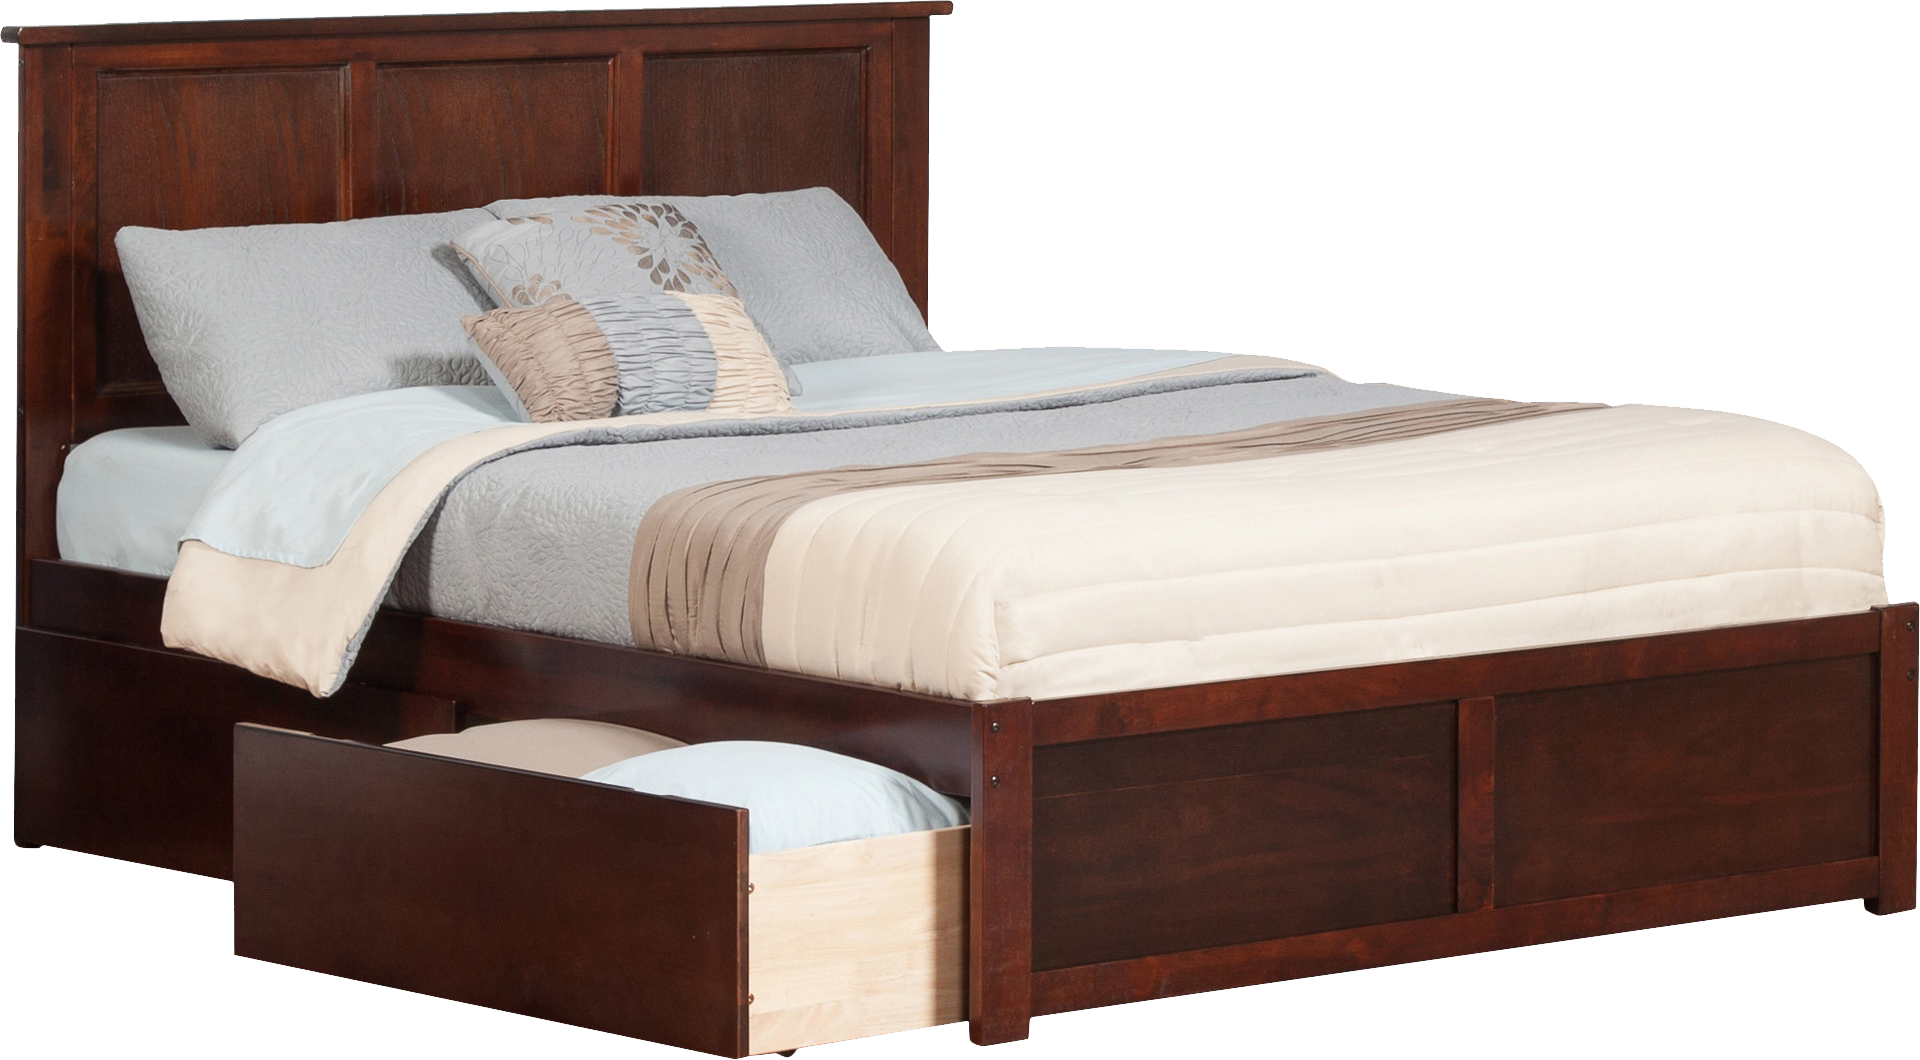 Clipart bed bedroom cabinet. Png images free download